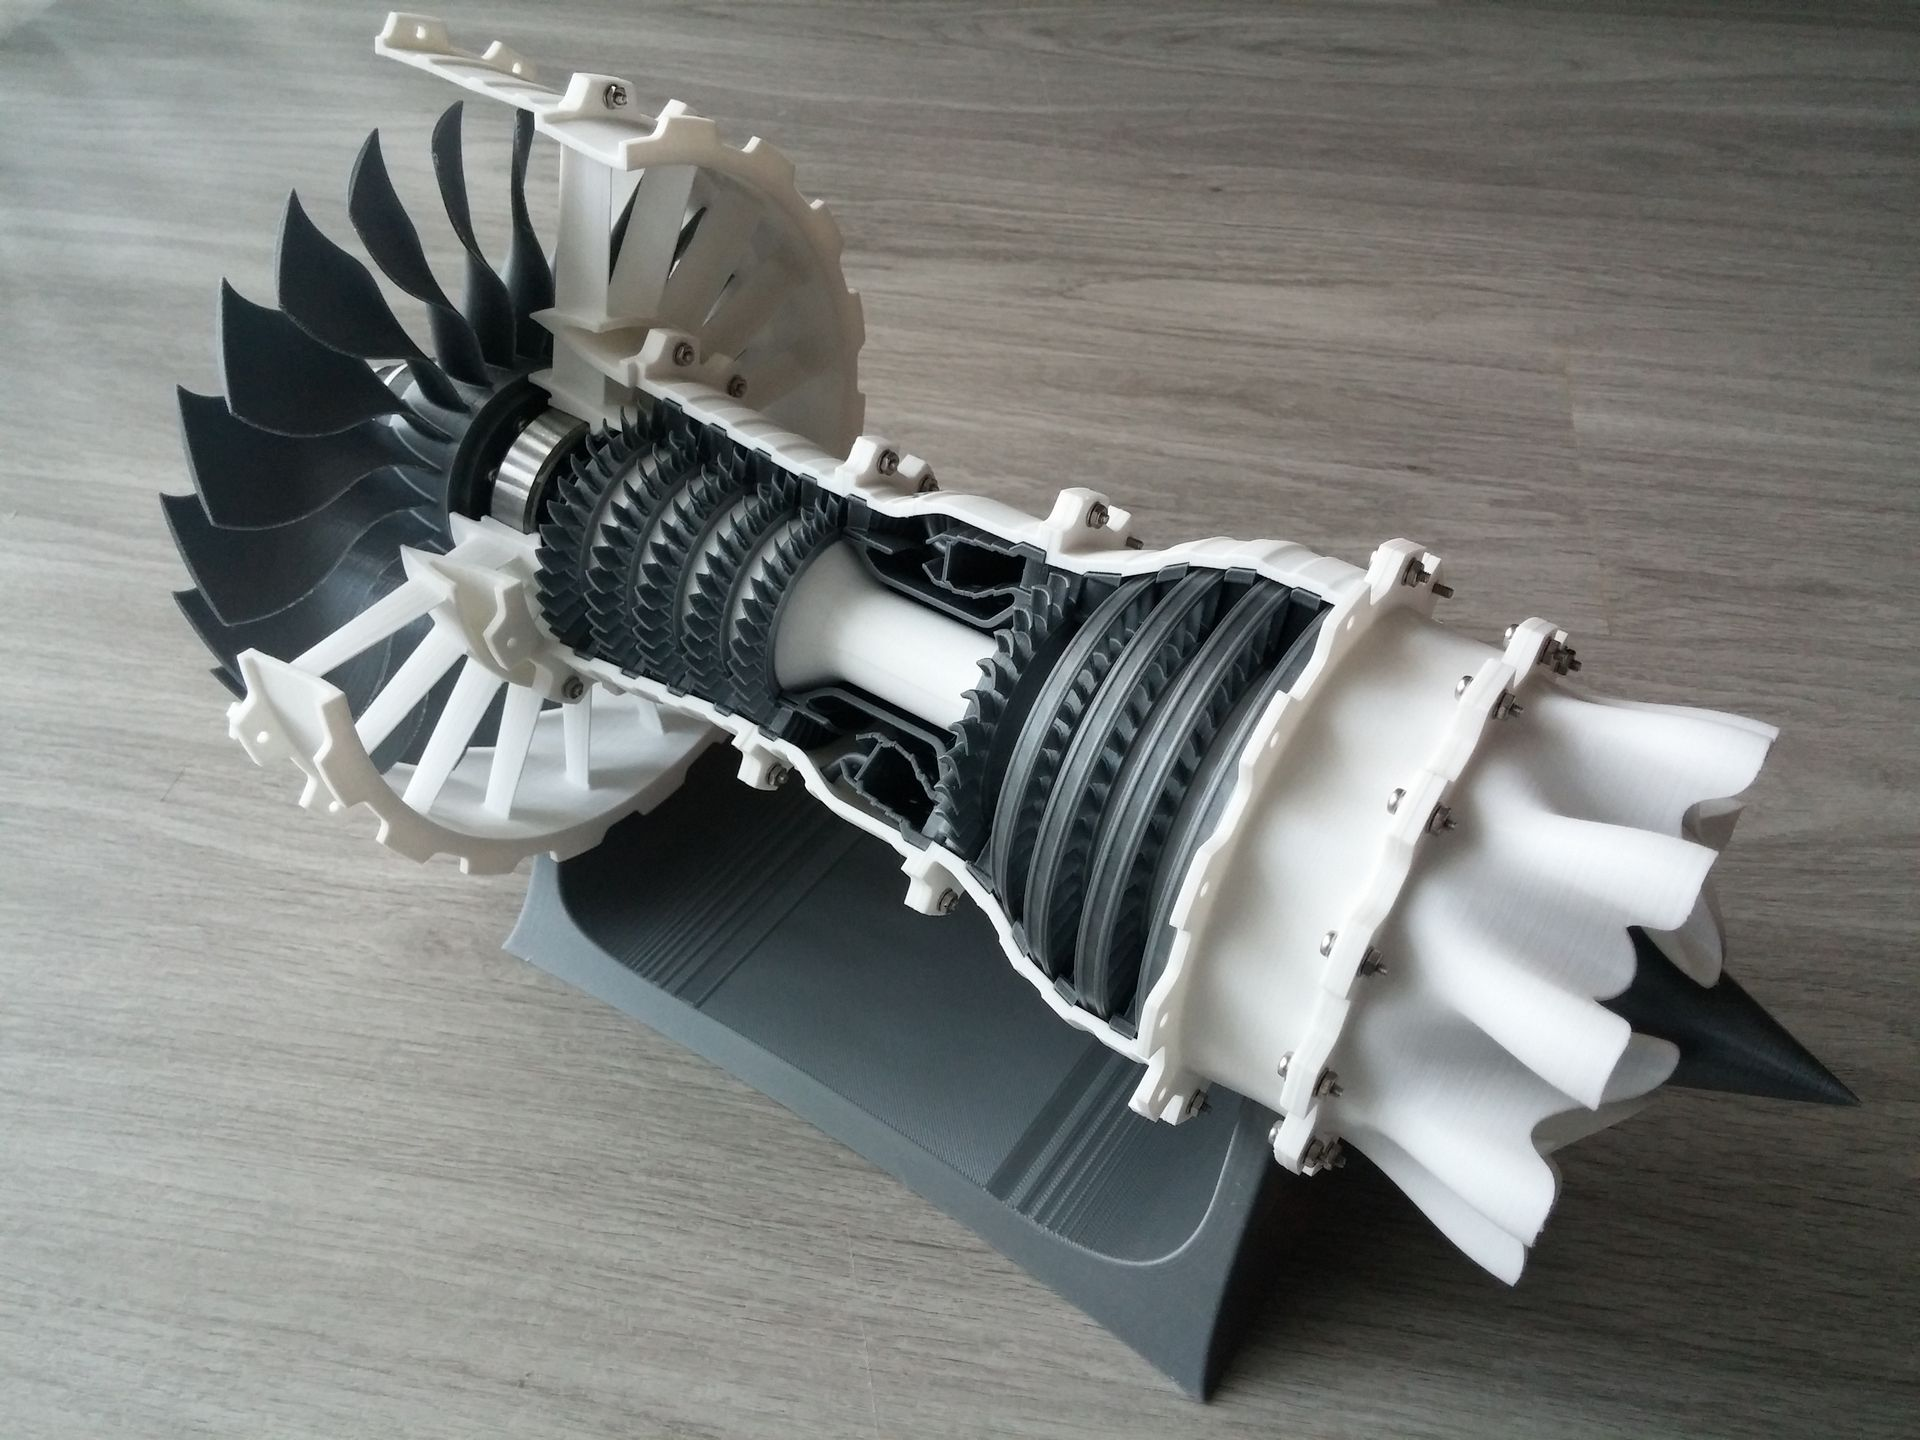 Super Model of the Week: 3D Printable High-Bypass Jet Engine [Mach 8  PT62